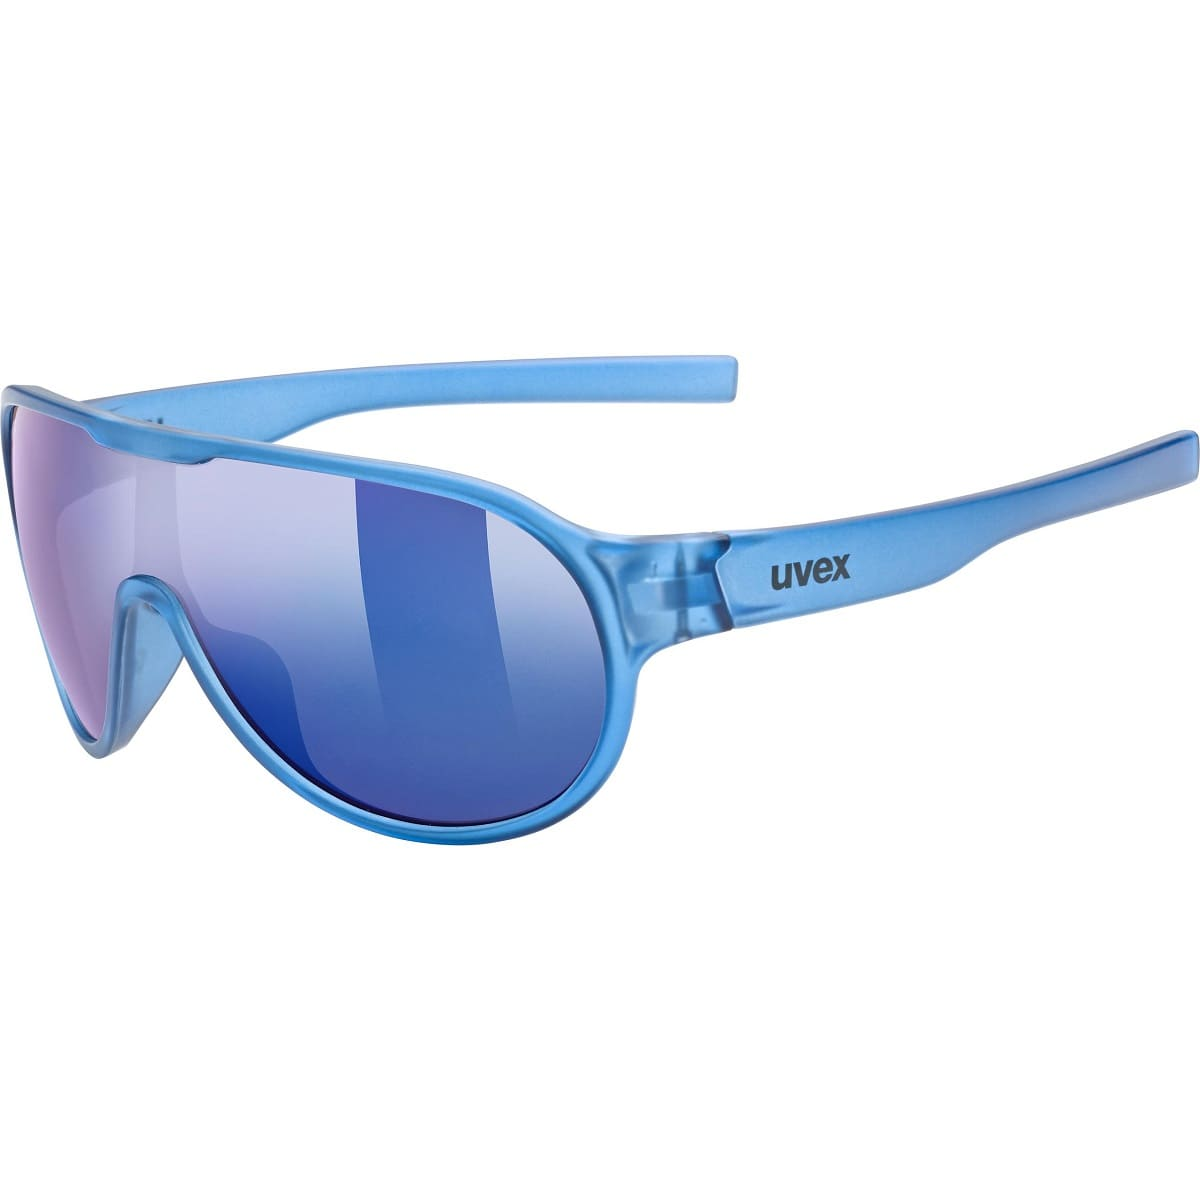 Uvex Sportstyle 512 Blue Transparent